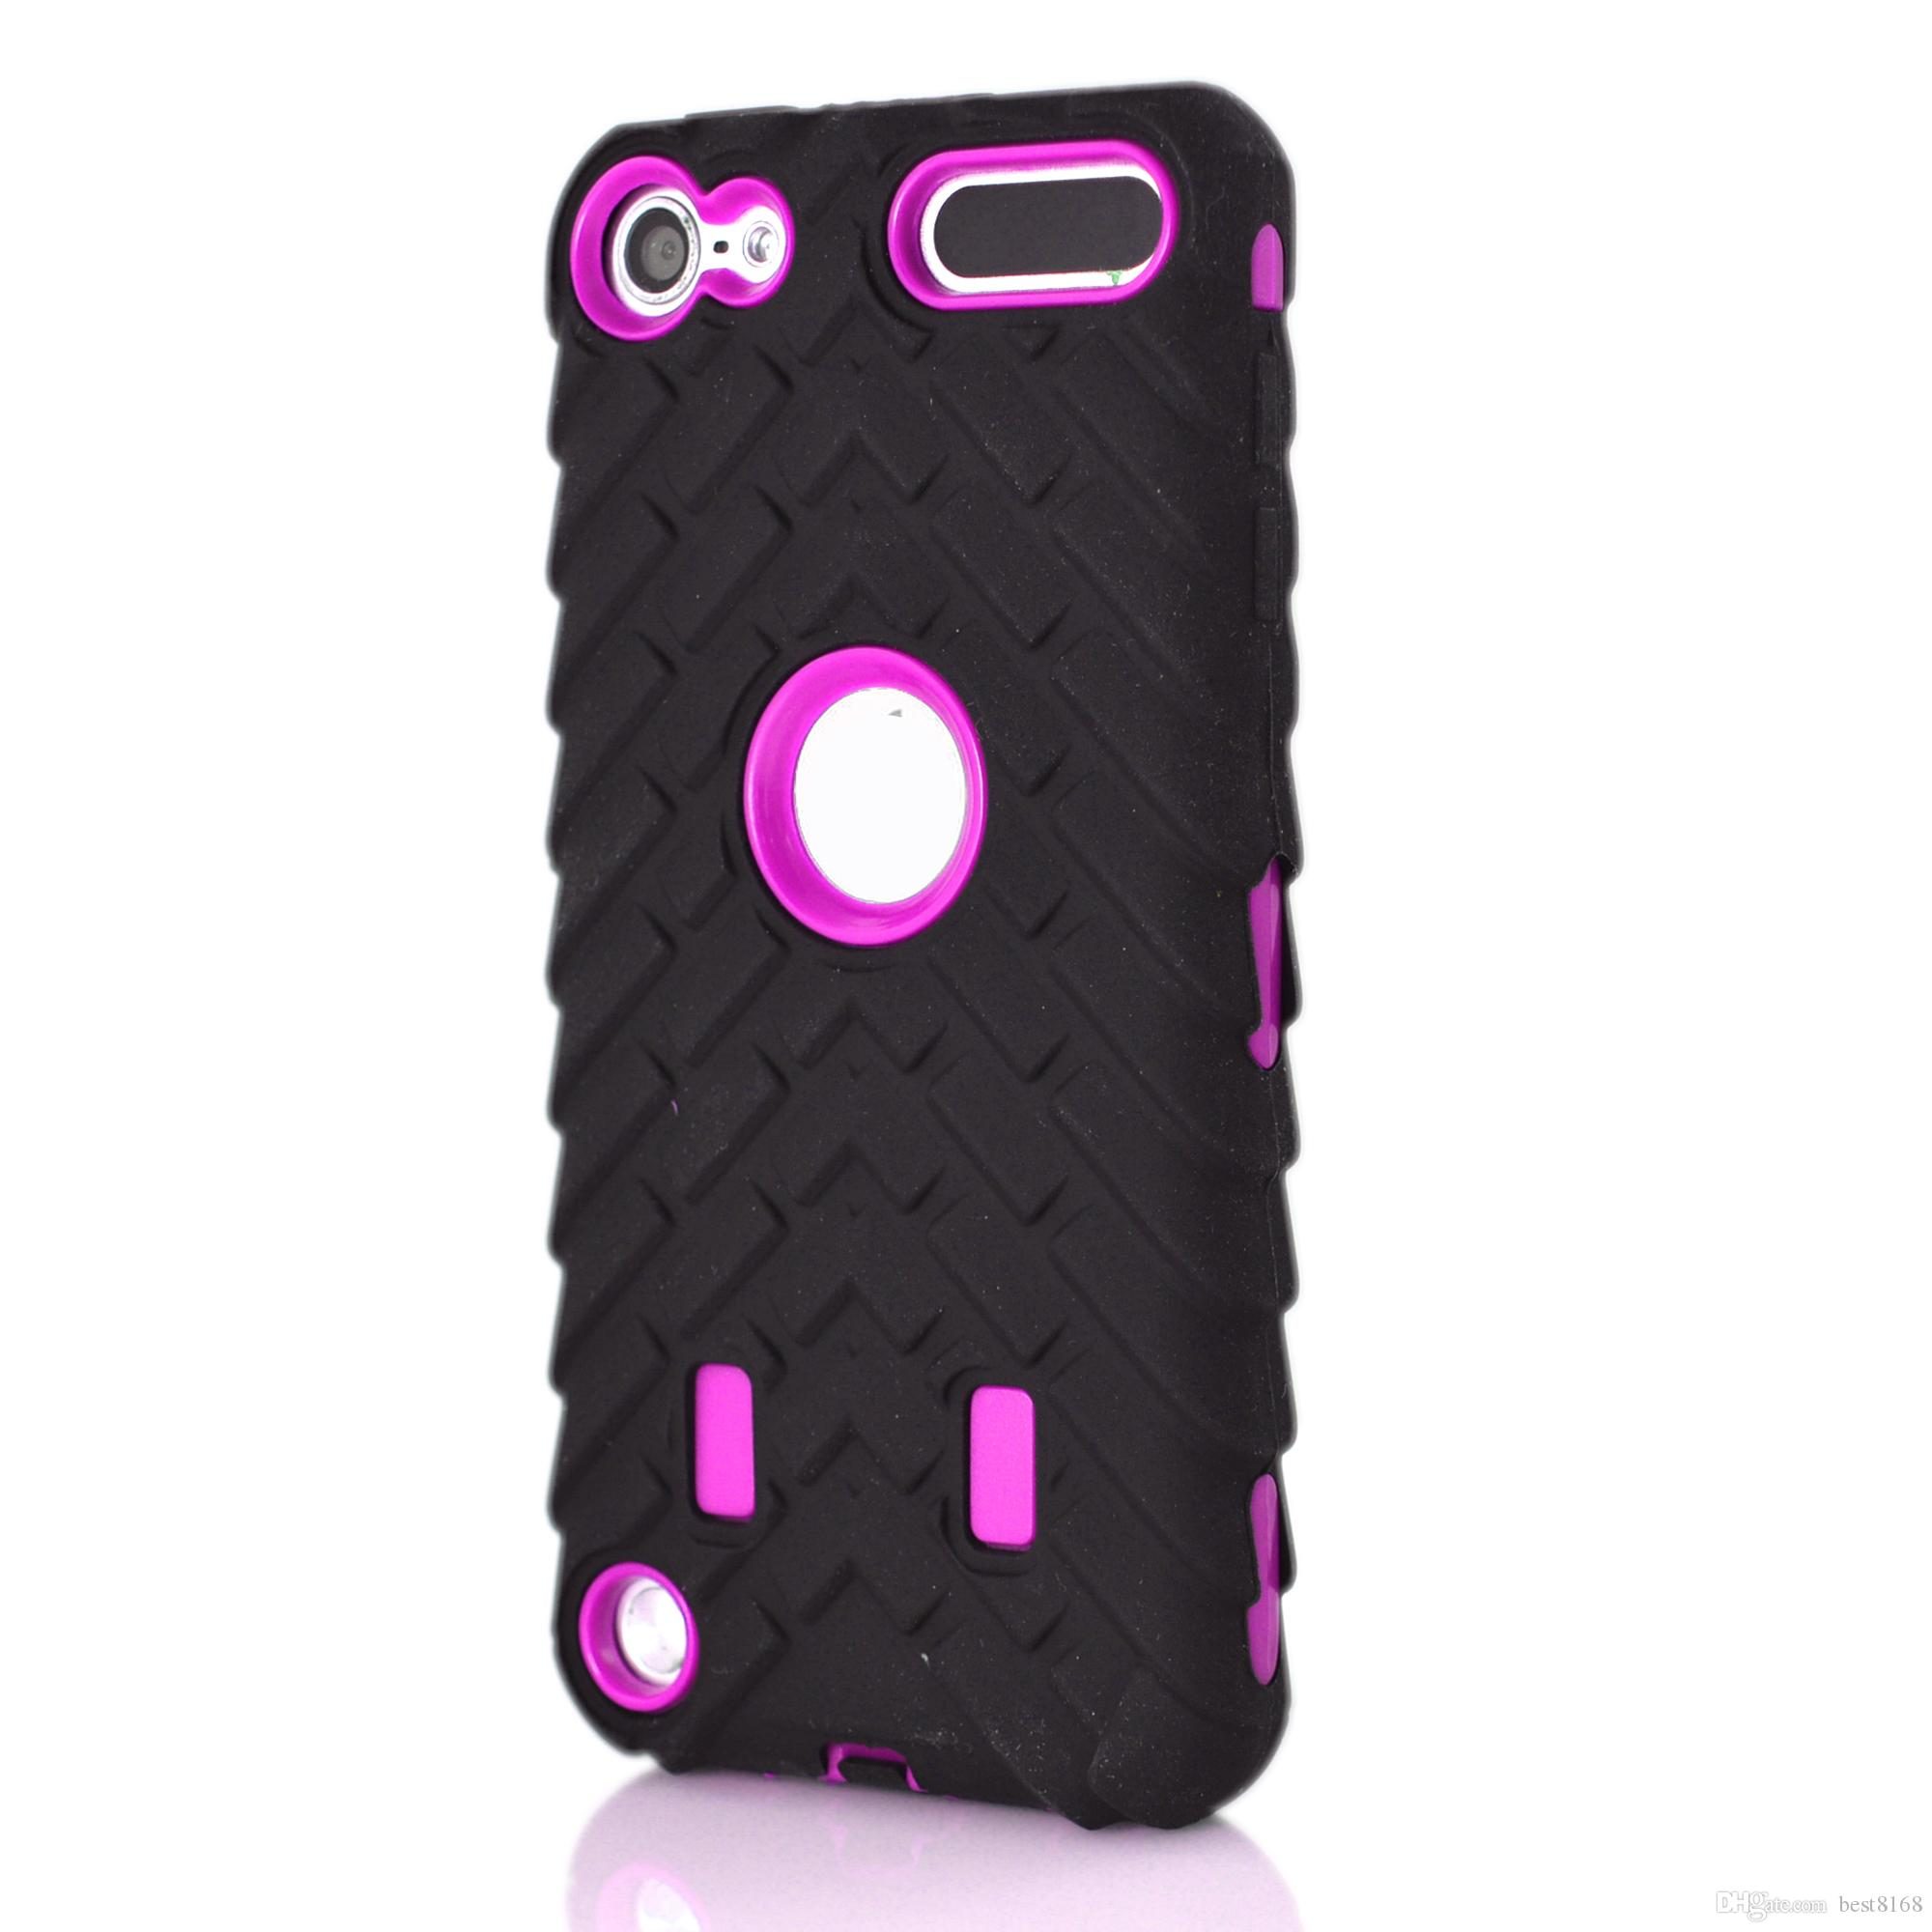 Neumático del neumático Vroom Hard PC Plastic + Soft Hybrid Layer Carcasa para Ipod Touch 6 6G 6to 5 5to Ipod6 Ipod5 Dual Color Car Tire Waterproof Skin